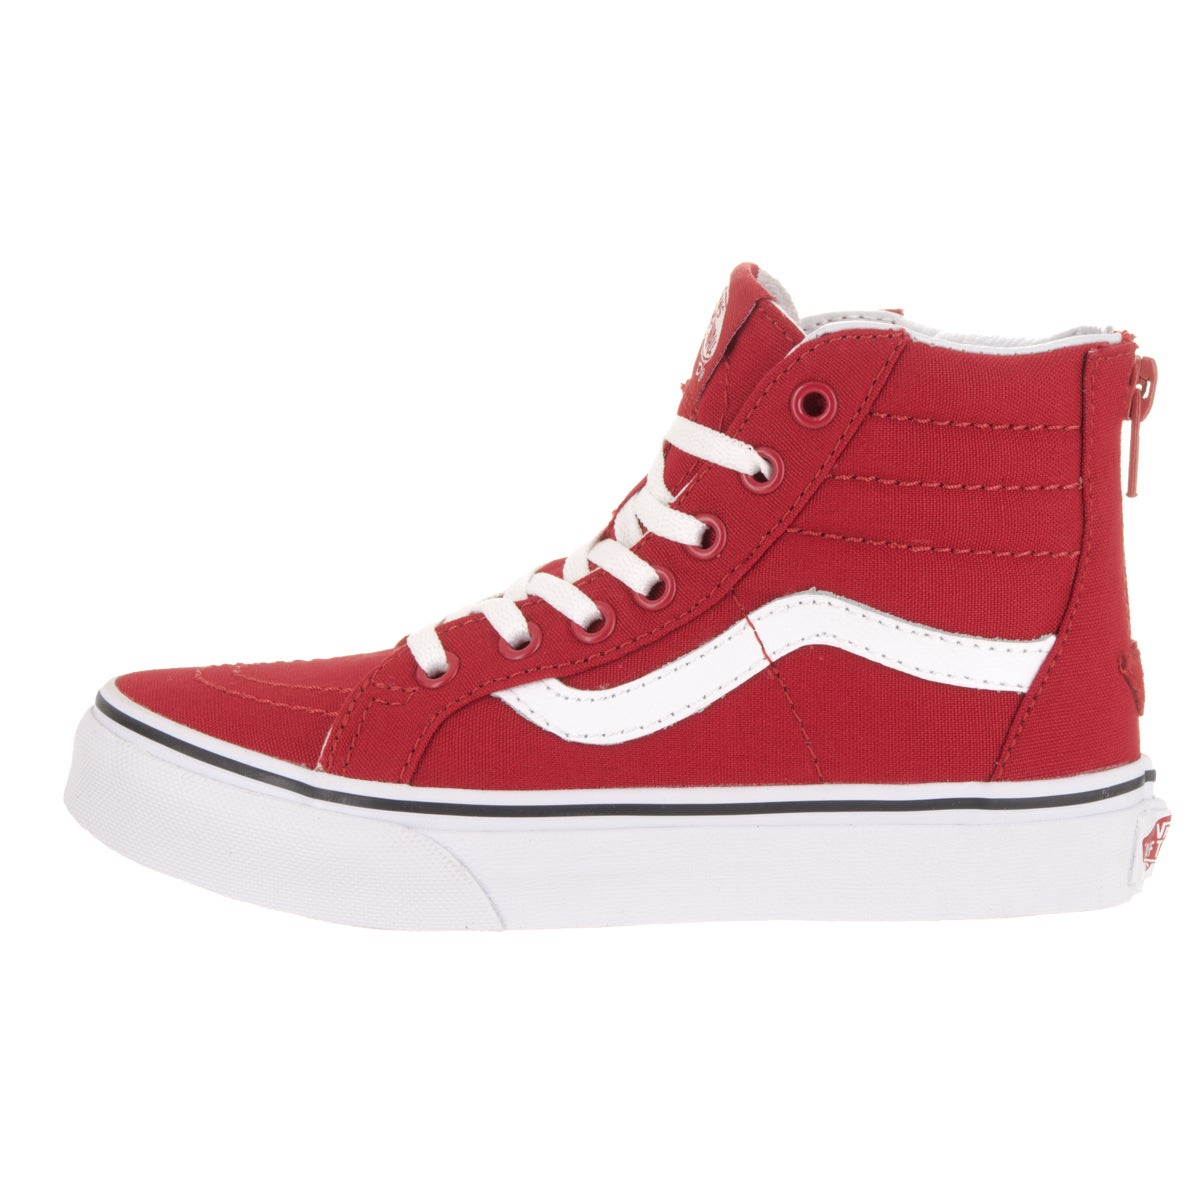 7bdaf896f24 Shop Vans Kids  Sk8-Hi Zip Varsity Racing Red True Skate Shoe - Free  Shipping Today - Overstock - 13344504